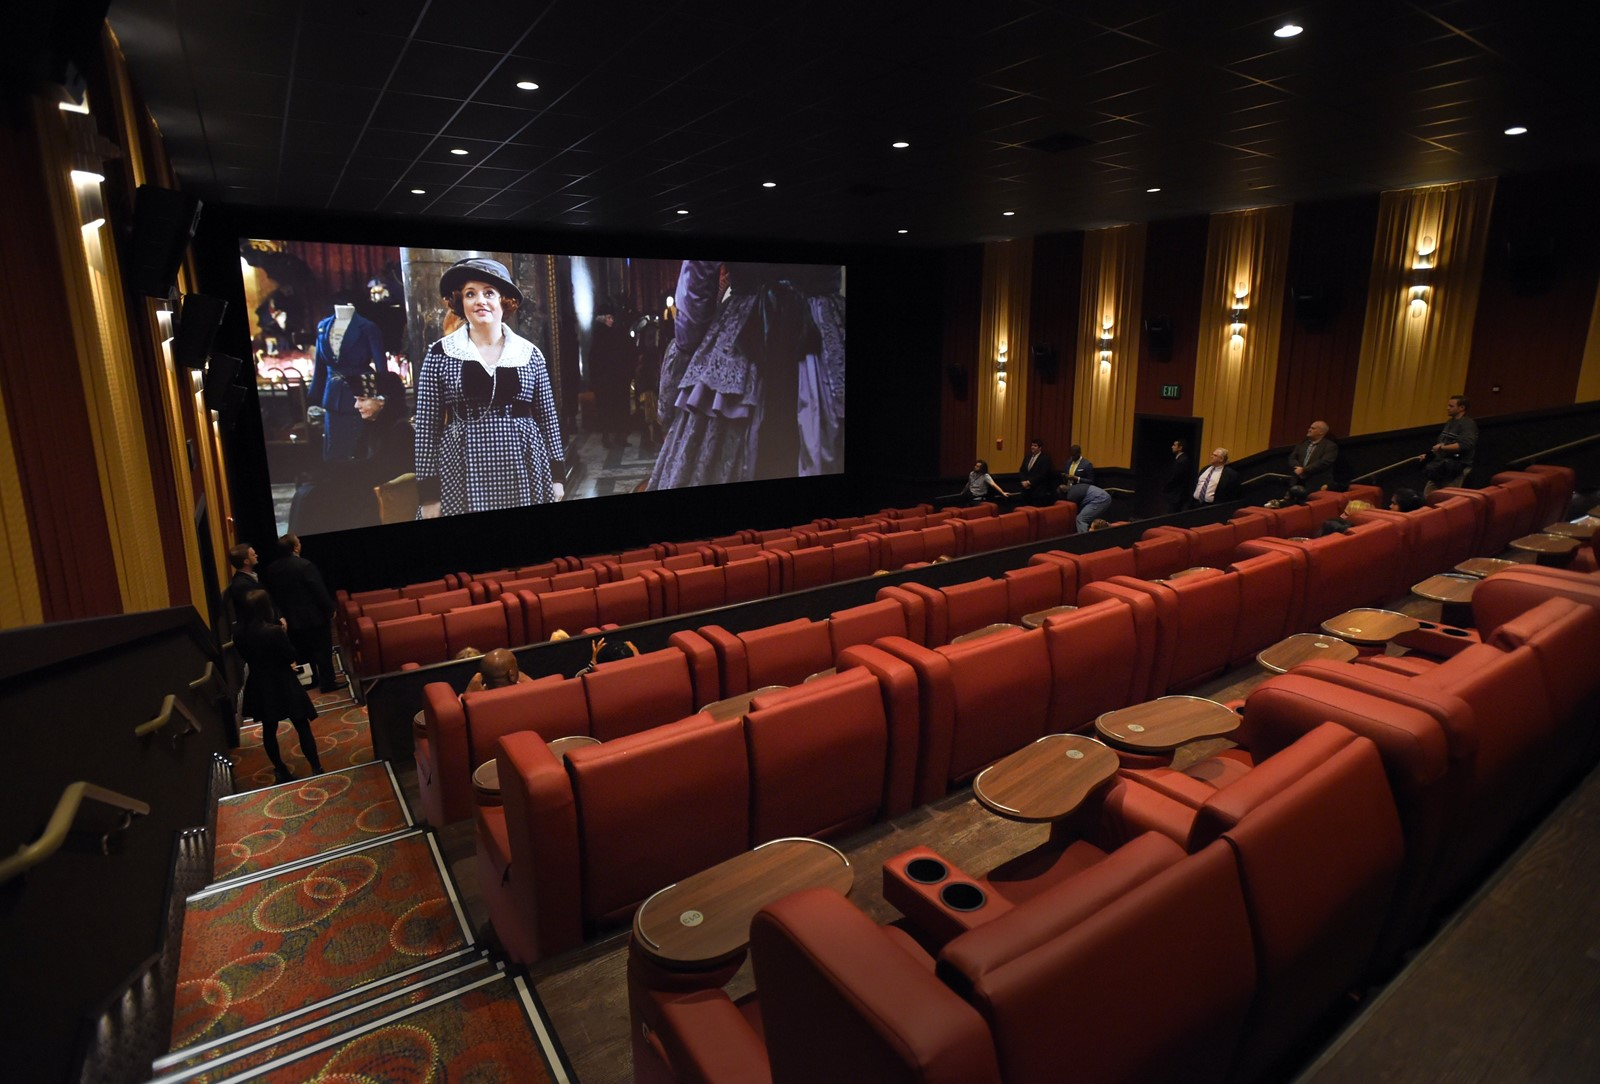 Etinysoft photo movie theater